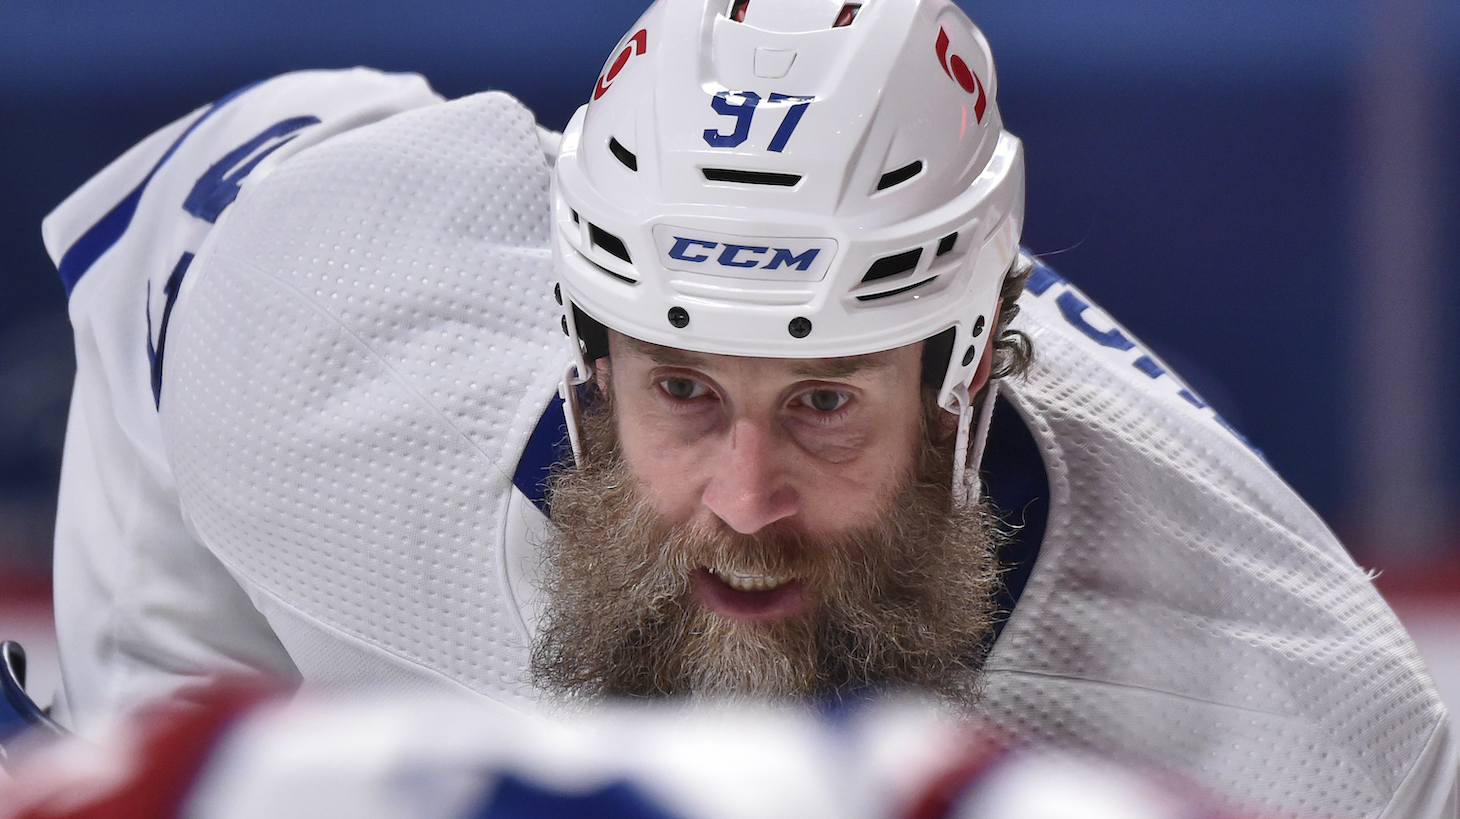 MONTREAL, QC - MAY 03: Joe Thornton #97 of the Toronto Maple Leafs skates against the Montreal Canadiens during the third period at the Bell Centre on May 3, 2021 in Montreal, Canada. The Montreal Canadiens defeated the Toronto Maple Leafs 3-2 in overtime. (Photo by Minas Panagiotakis/Getty Images)